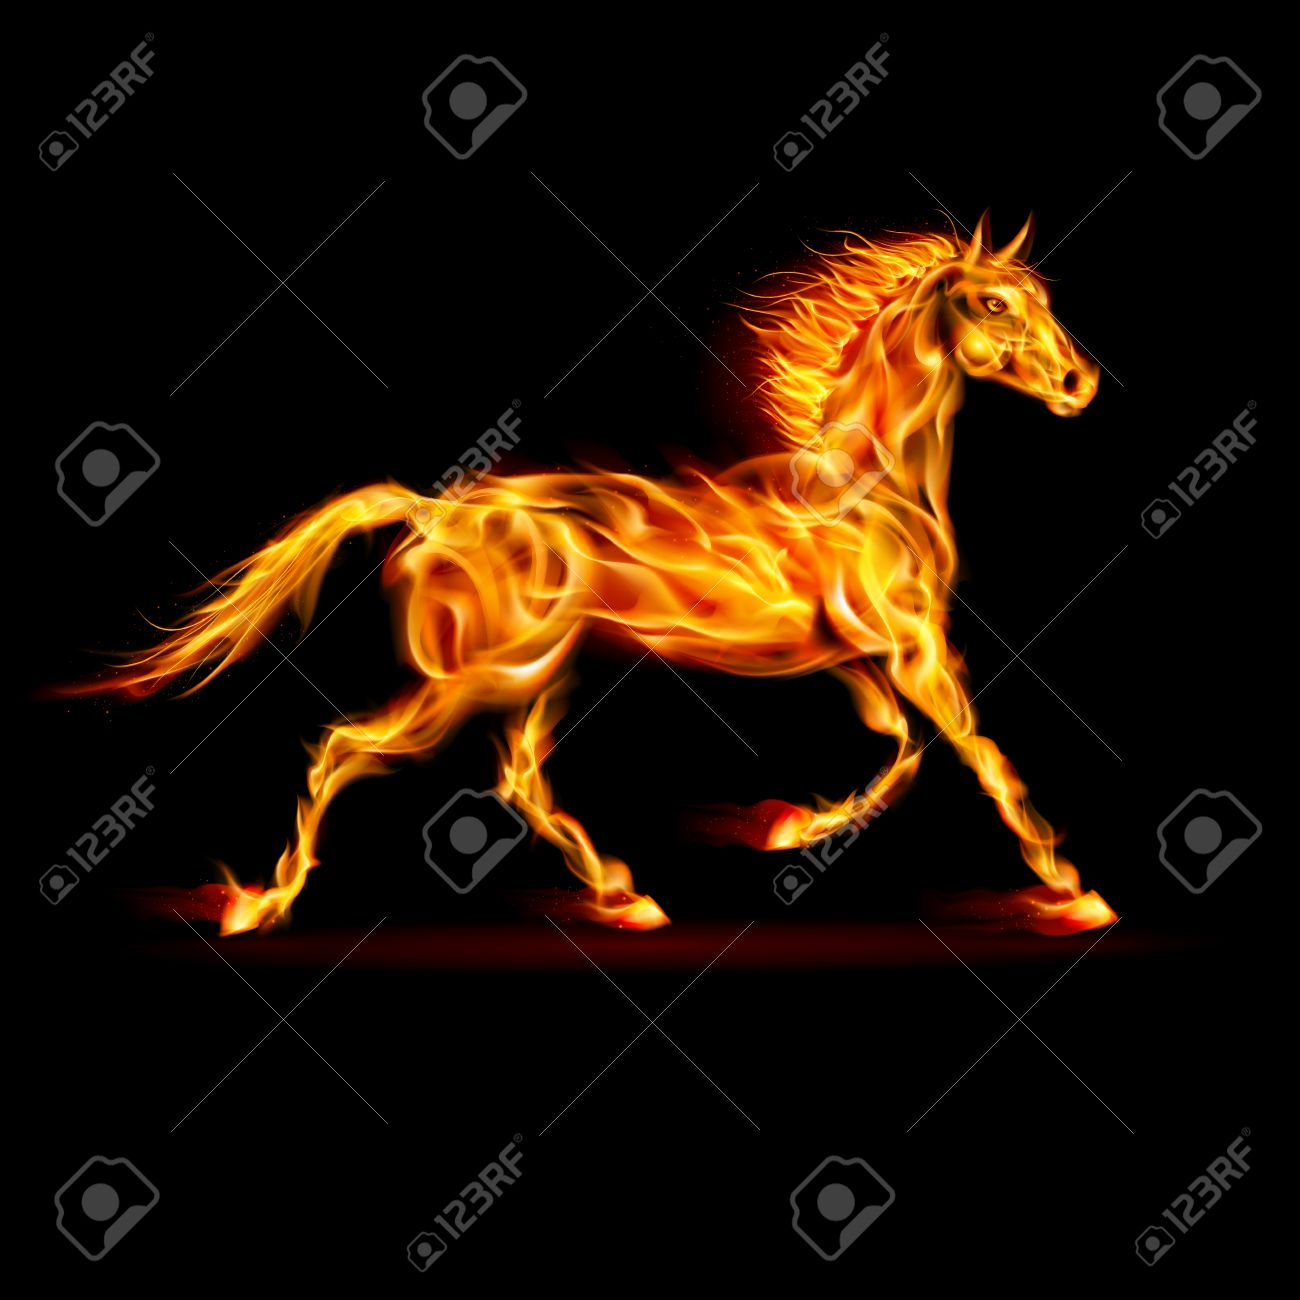 Fire horse in motion on black background. Stock Vector - 22779636